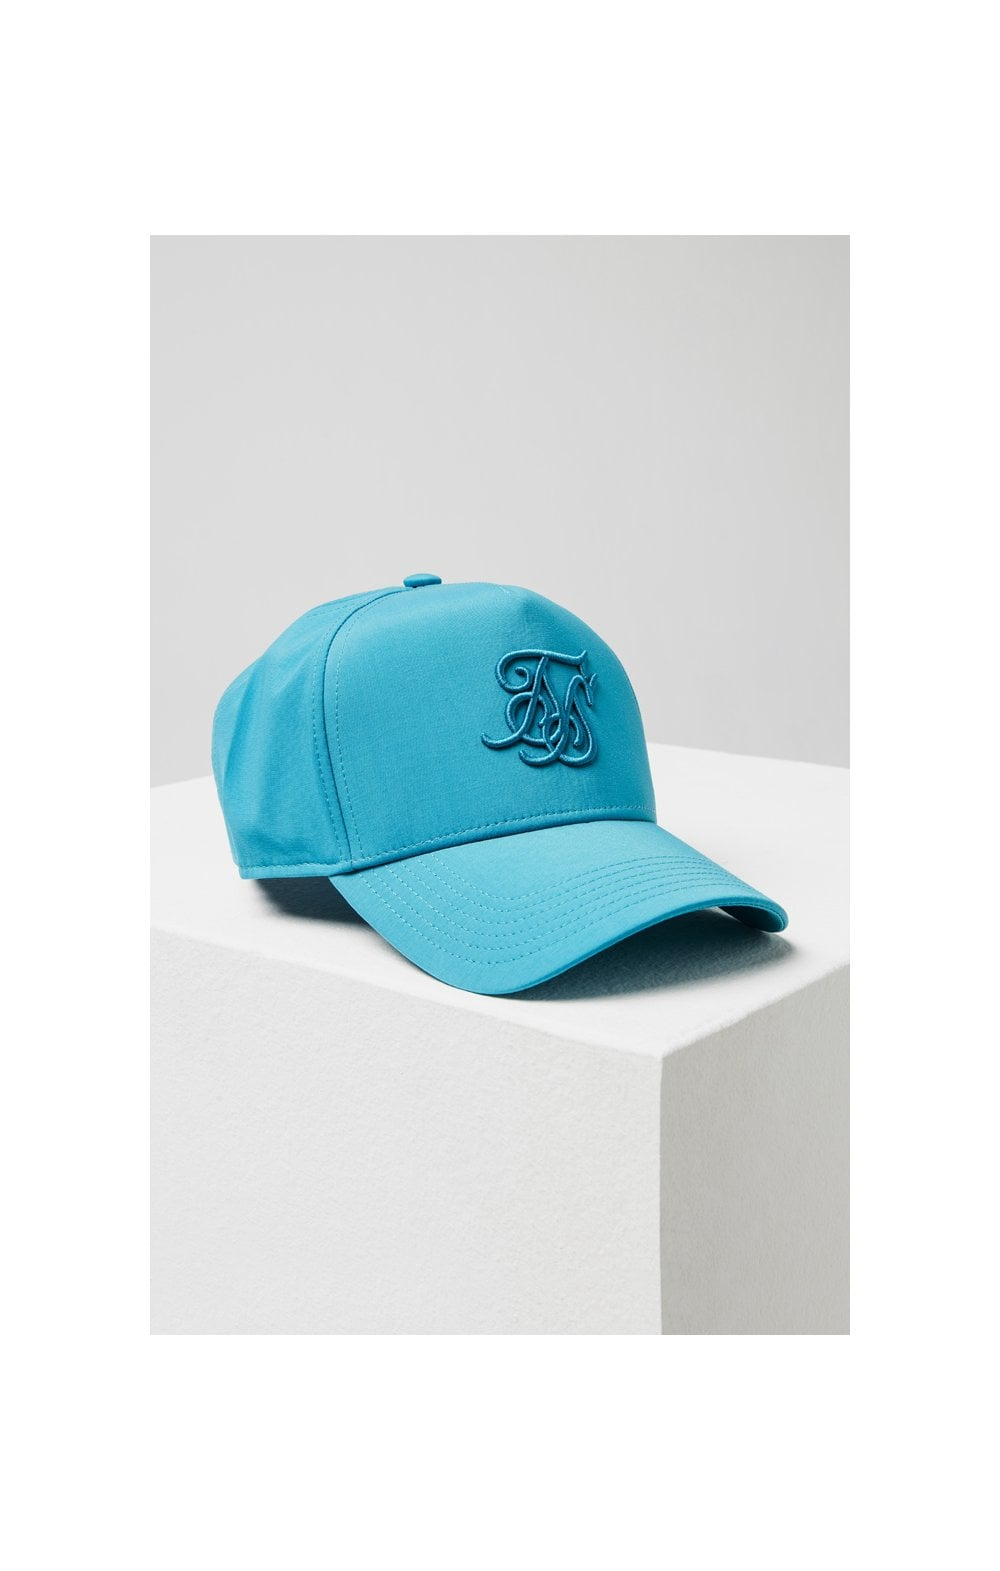 SikSilk Crushed Nylon Full Trucker - Teal (2)